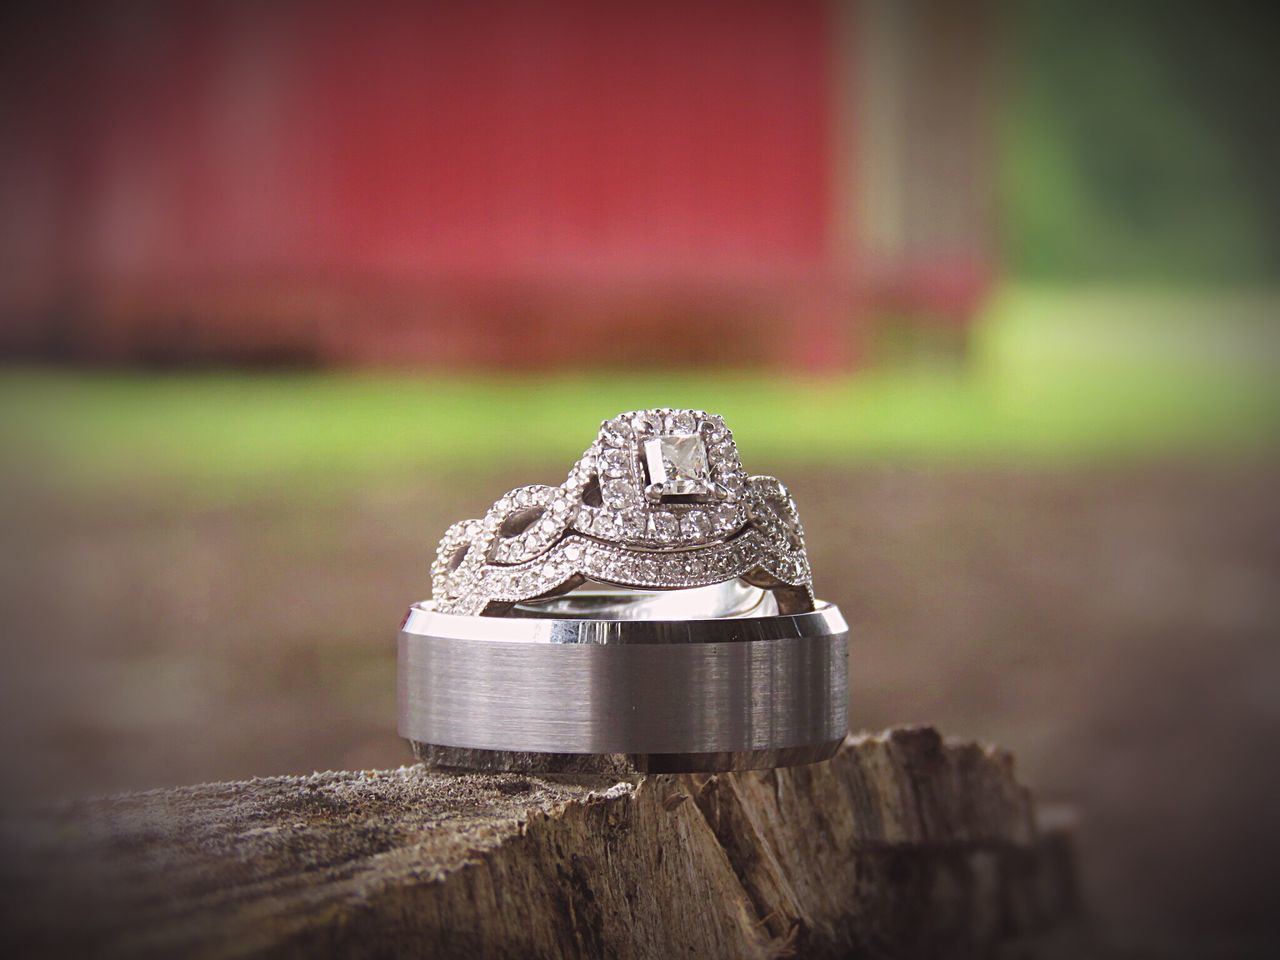 Focus On Foreground Close-up Vintagecountrywedding I Said Yes ♡  Kayjeweler Diamonds Ourrings Goingtomarrymybestfriend Weddingrings Nature